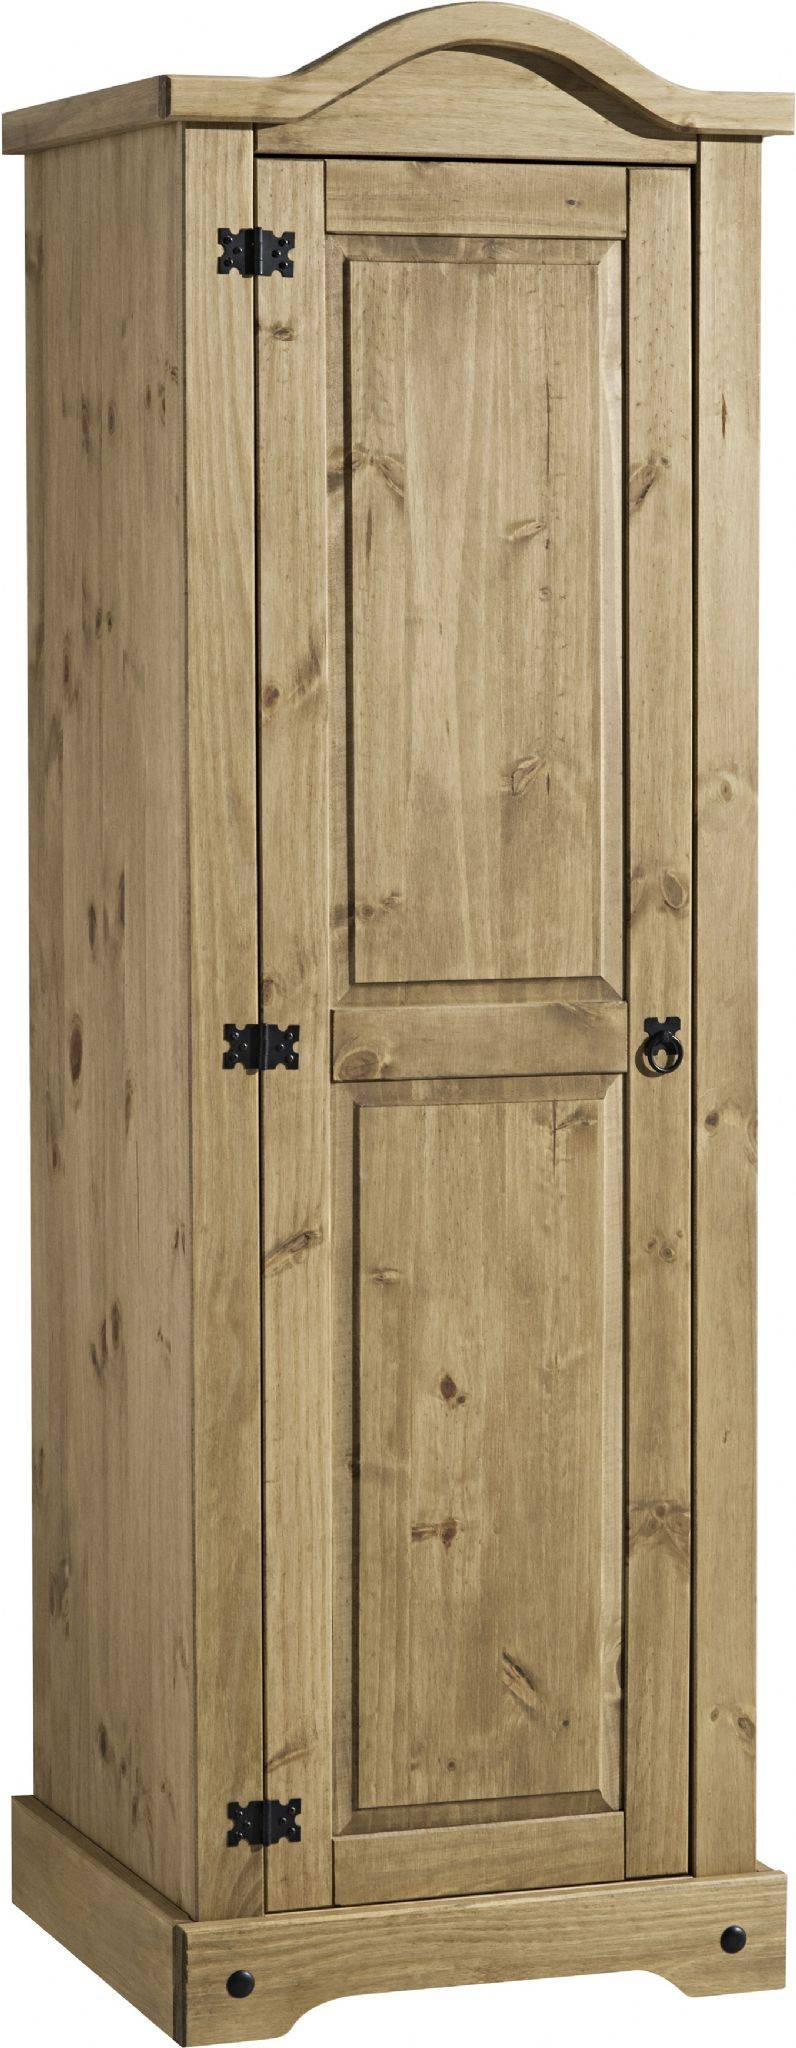 Corona Single One Mirrored Door 1 Drawer Armoire Wardrobe intended for Single Pine Wardrobes (Image 4 of 15)